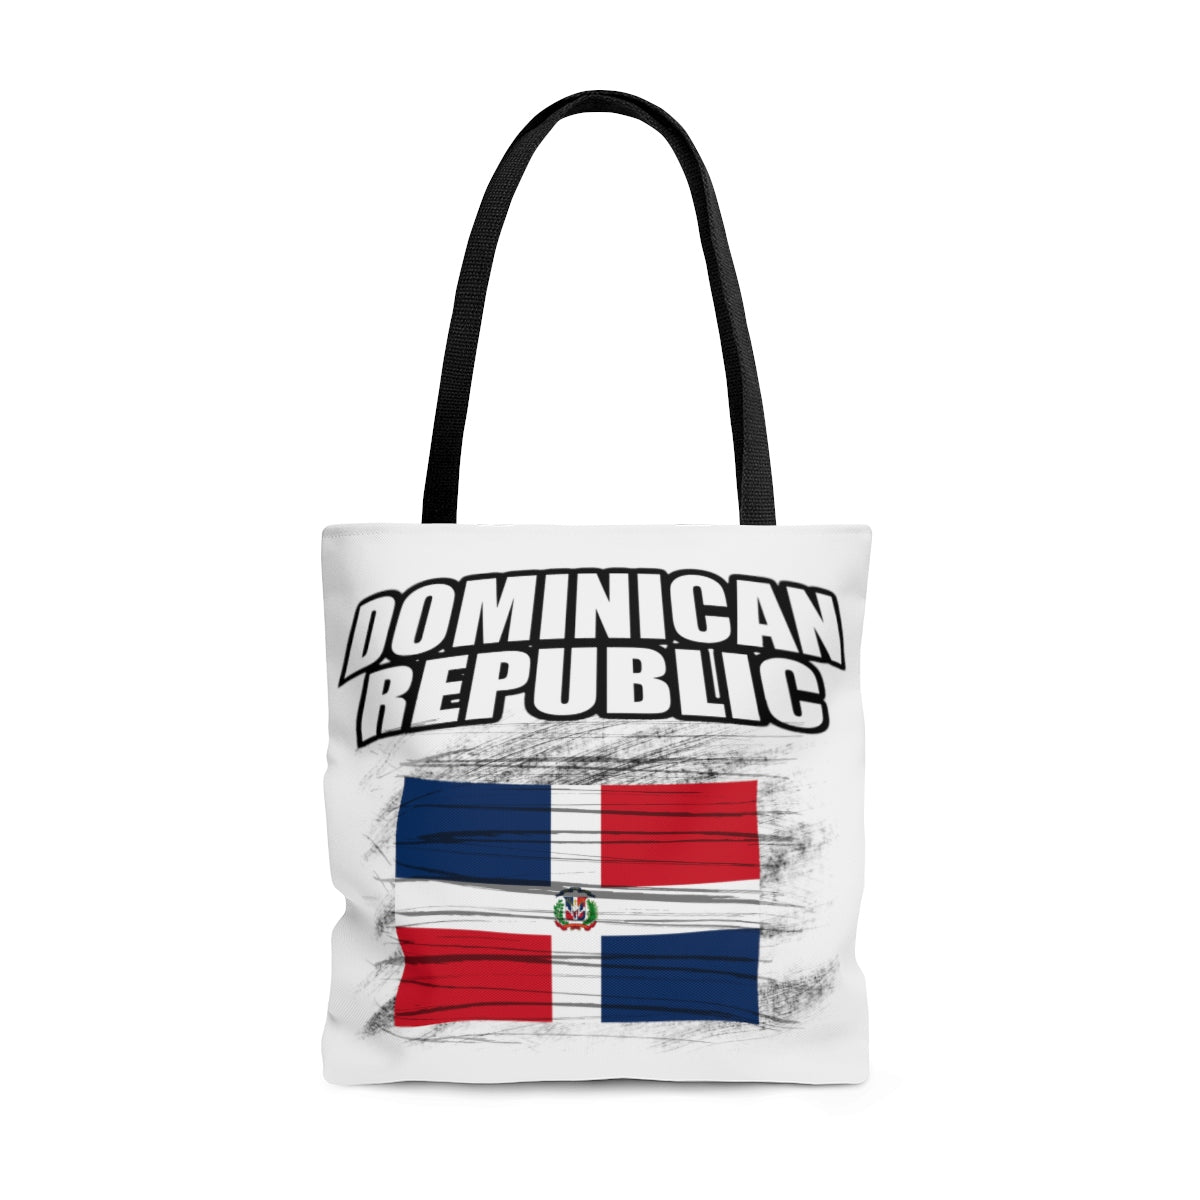 Dominican Republic AOP Tote Bag